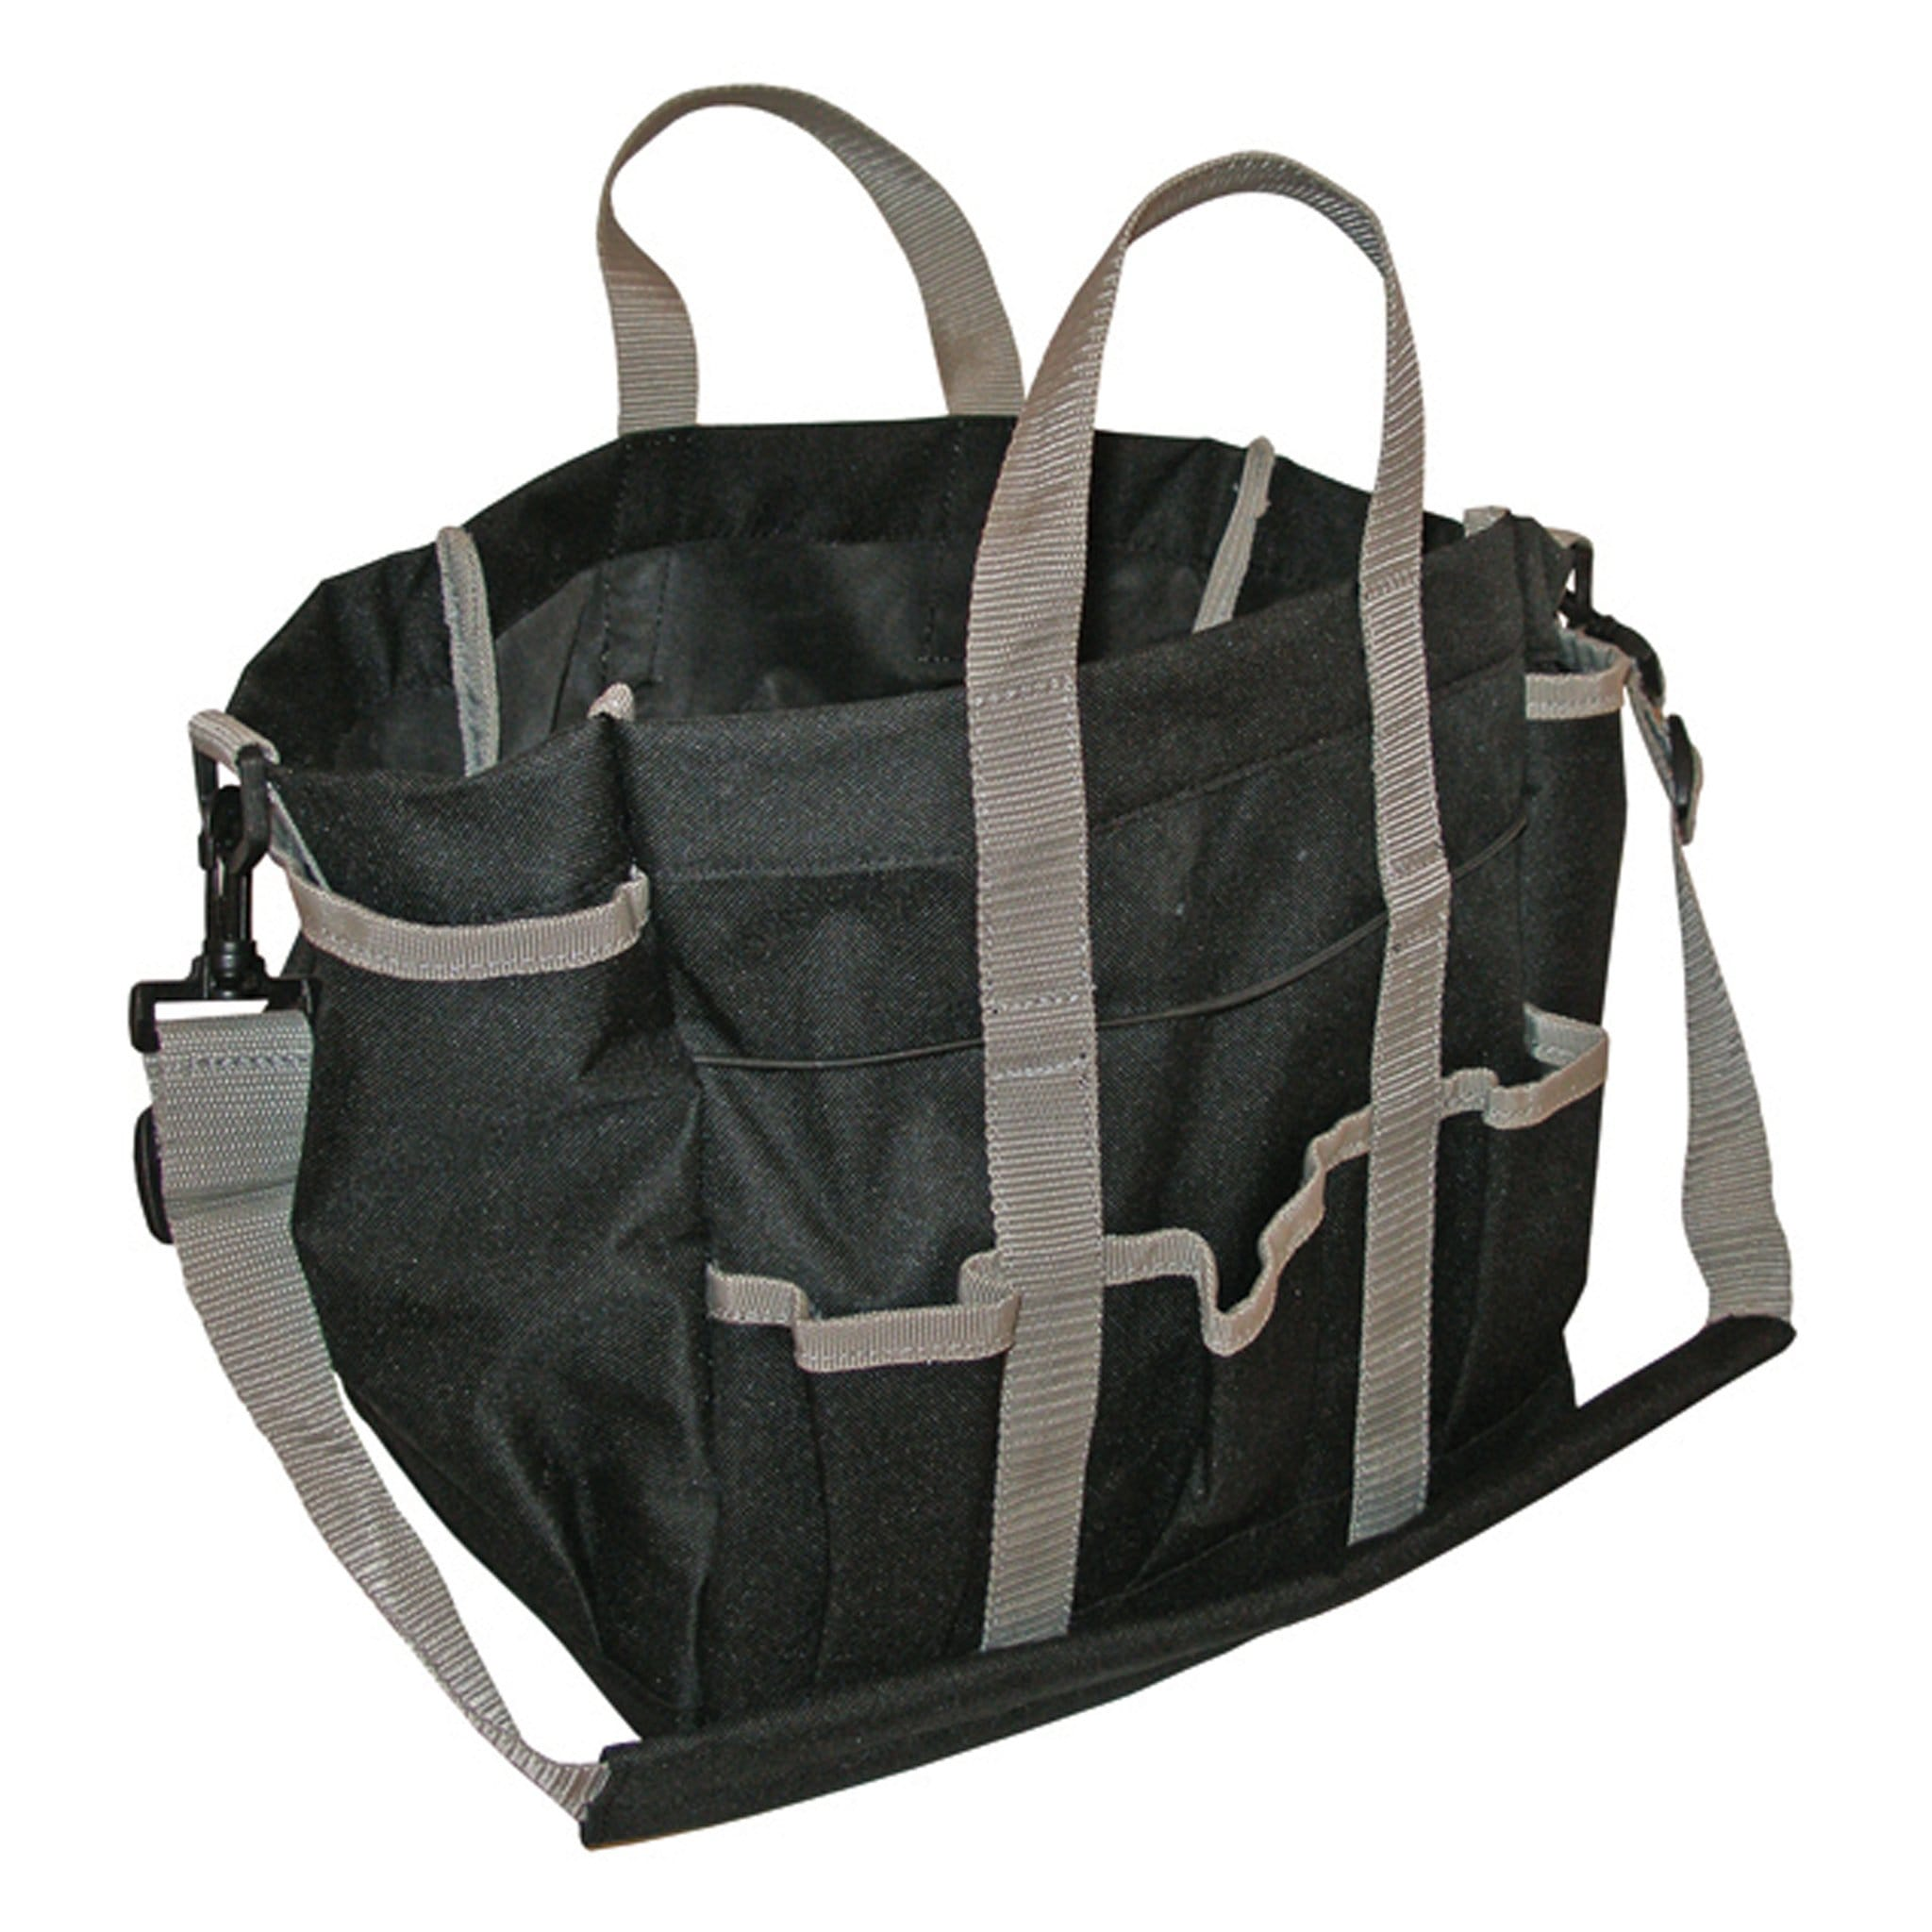 Stable Kit Deluxe Tote Bag Black SKT886916